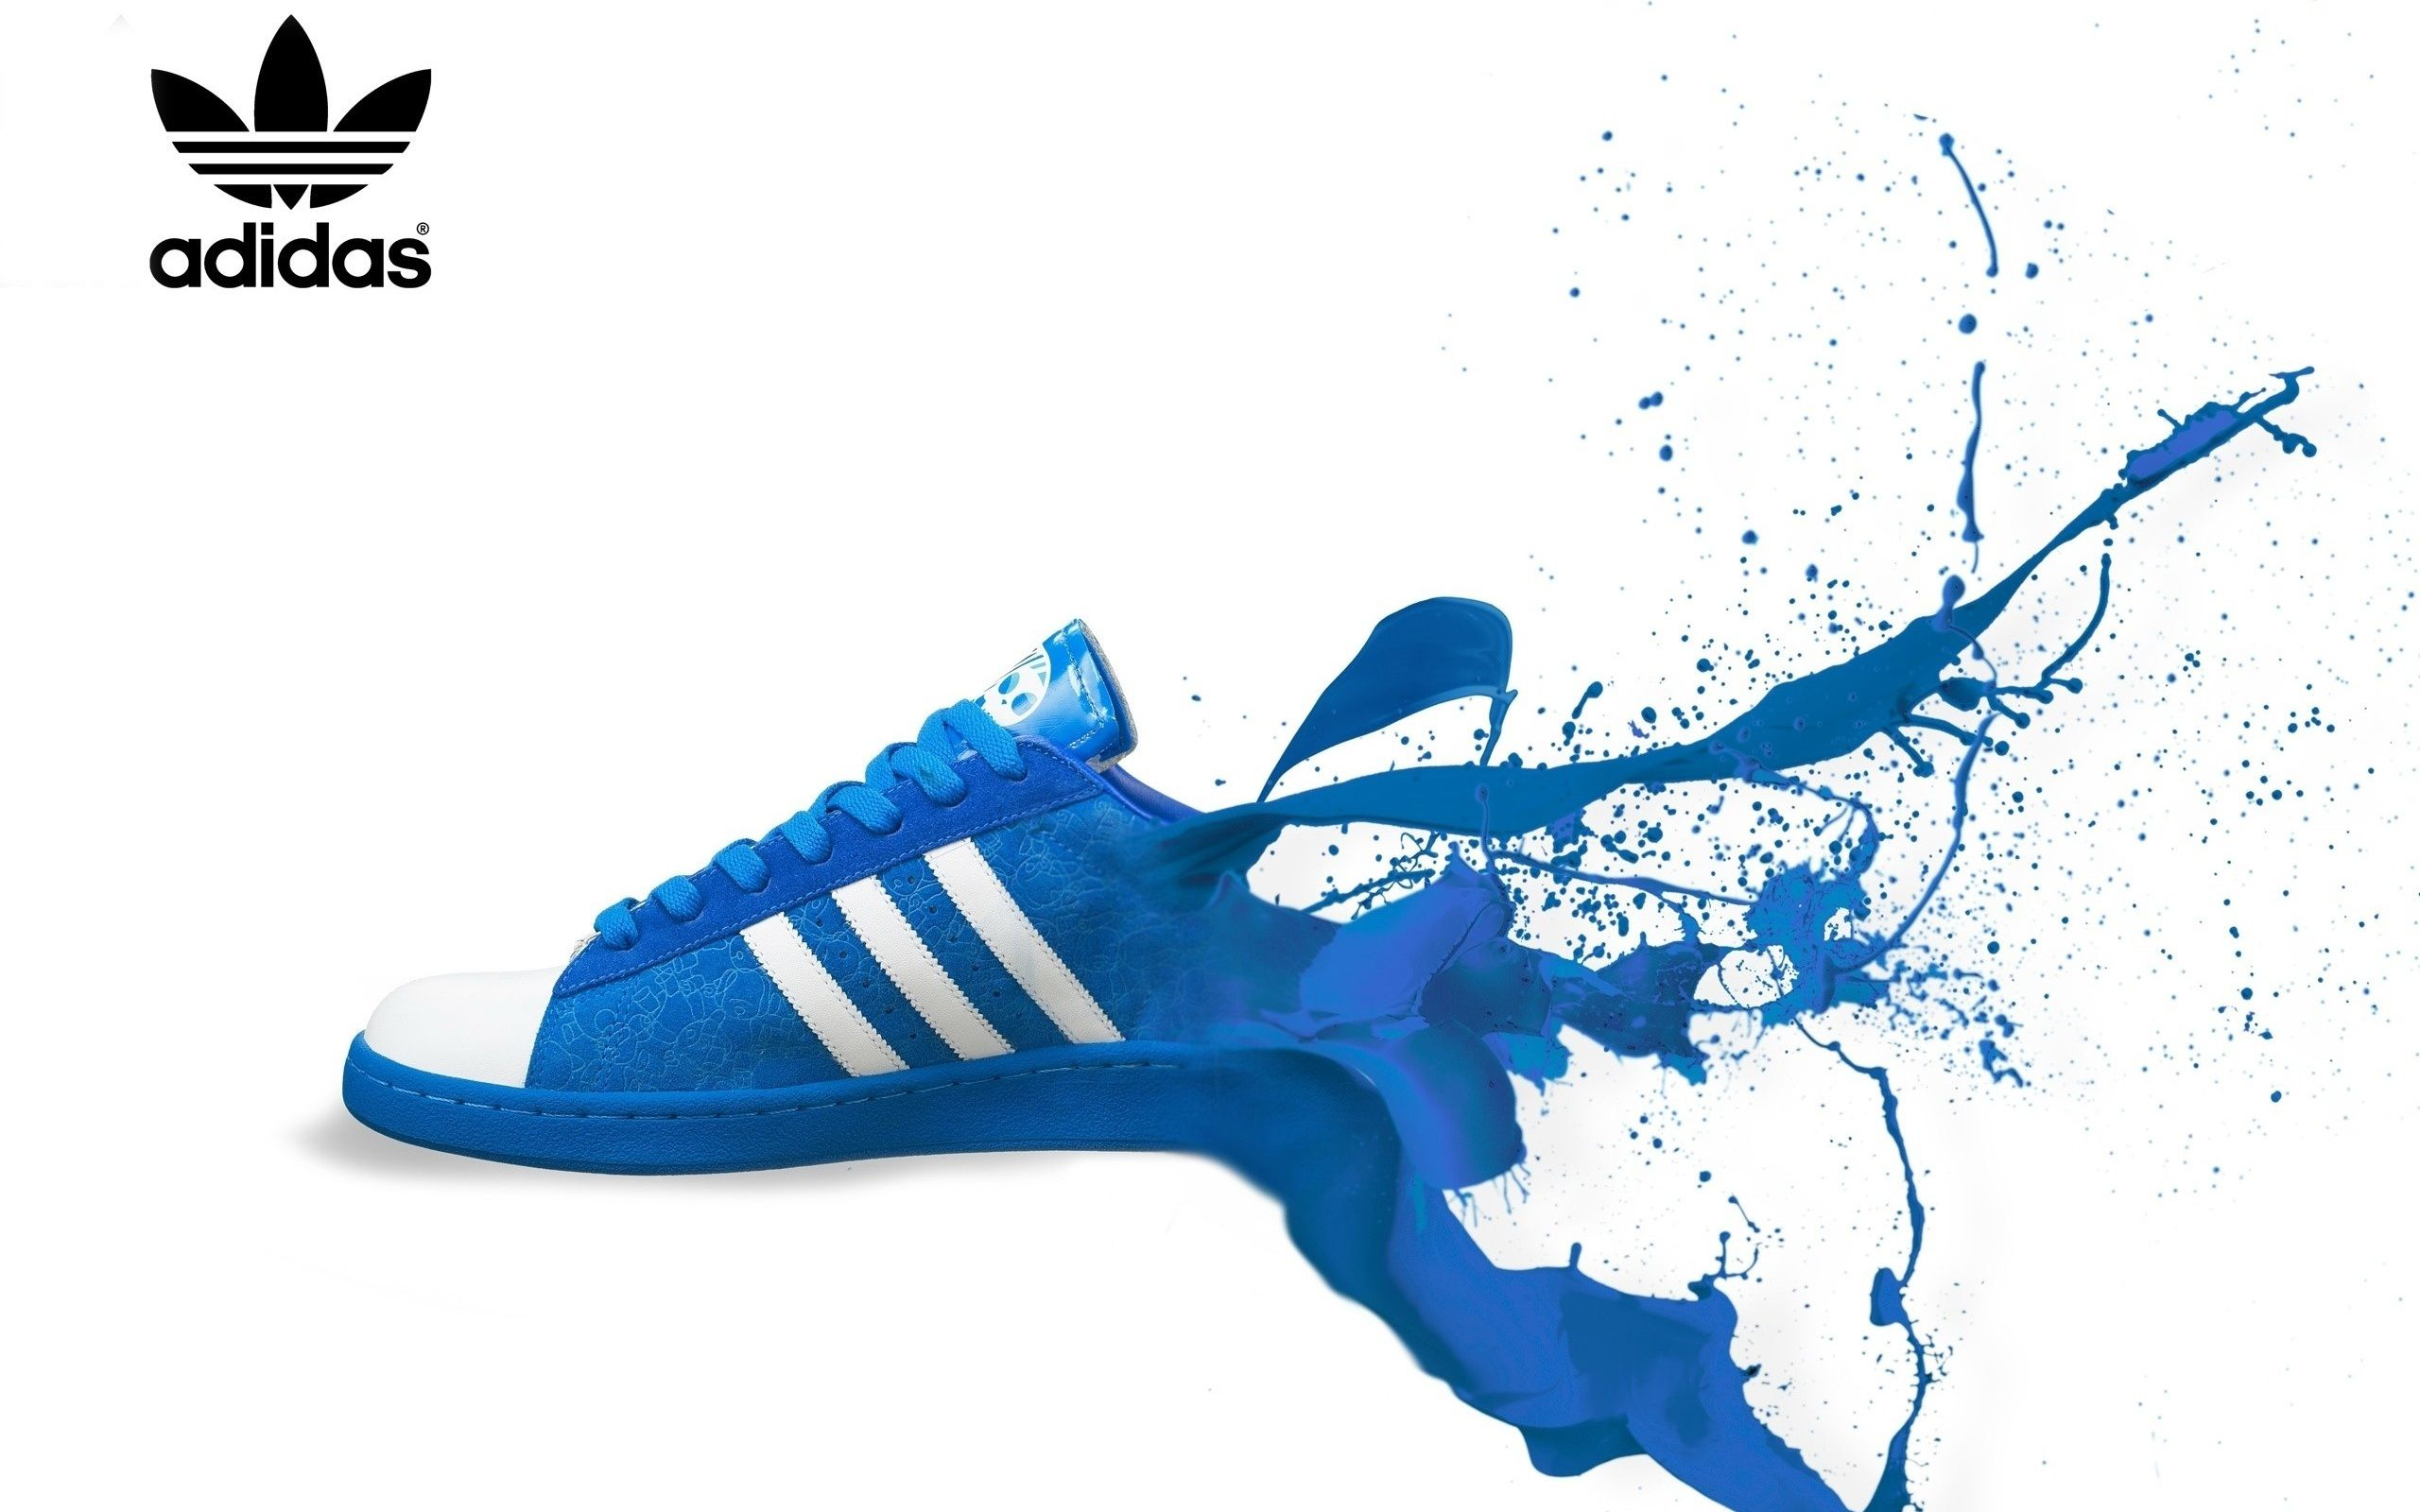 best authentic 84456 6cc31 Adidas 2560x1600 Wallpapers Download Desktop HD And